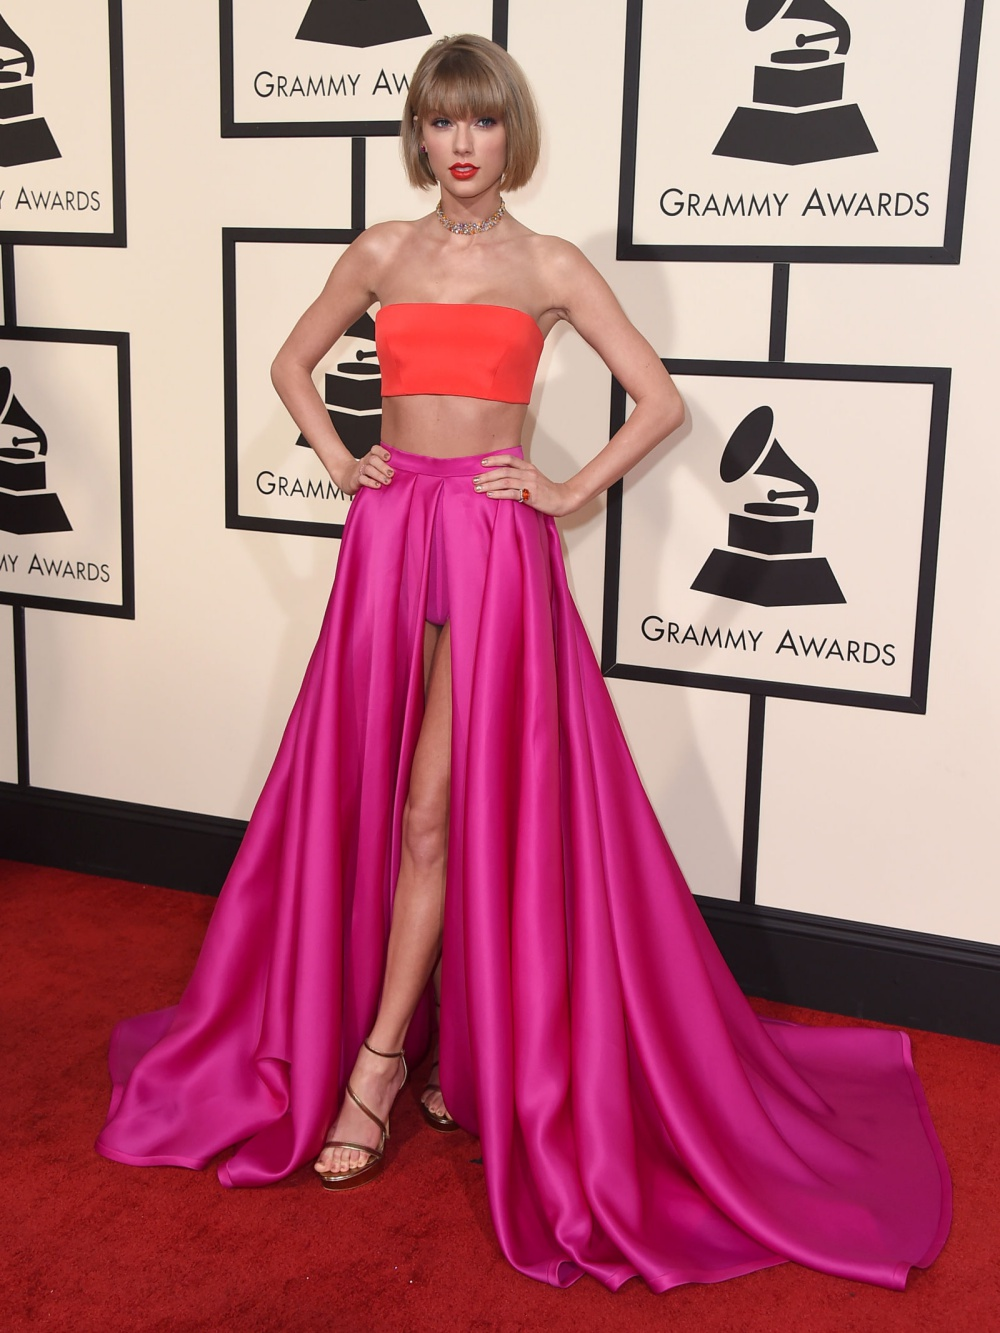 Taylor Swift Grammys 2016 Best Dressed Celebrities